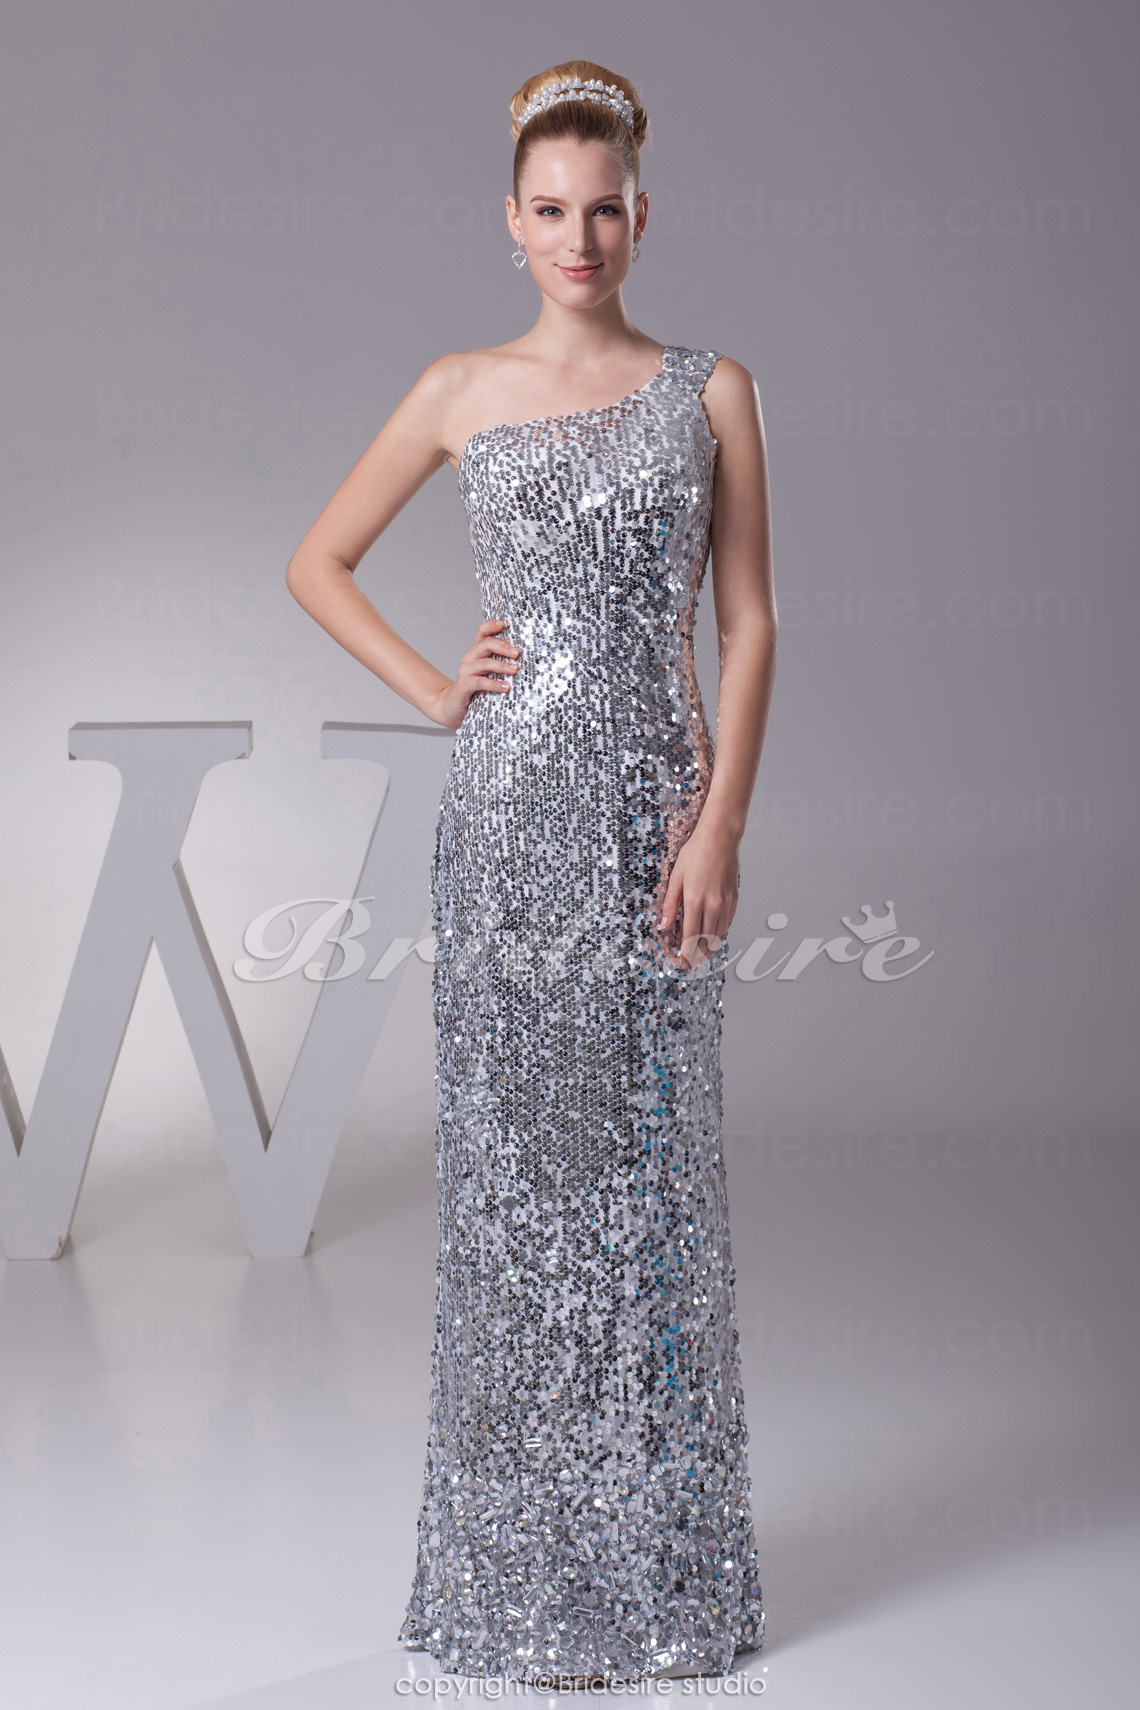 Sheath/Column One Shoulder Floor-length Sleeveless Sequined Dres